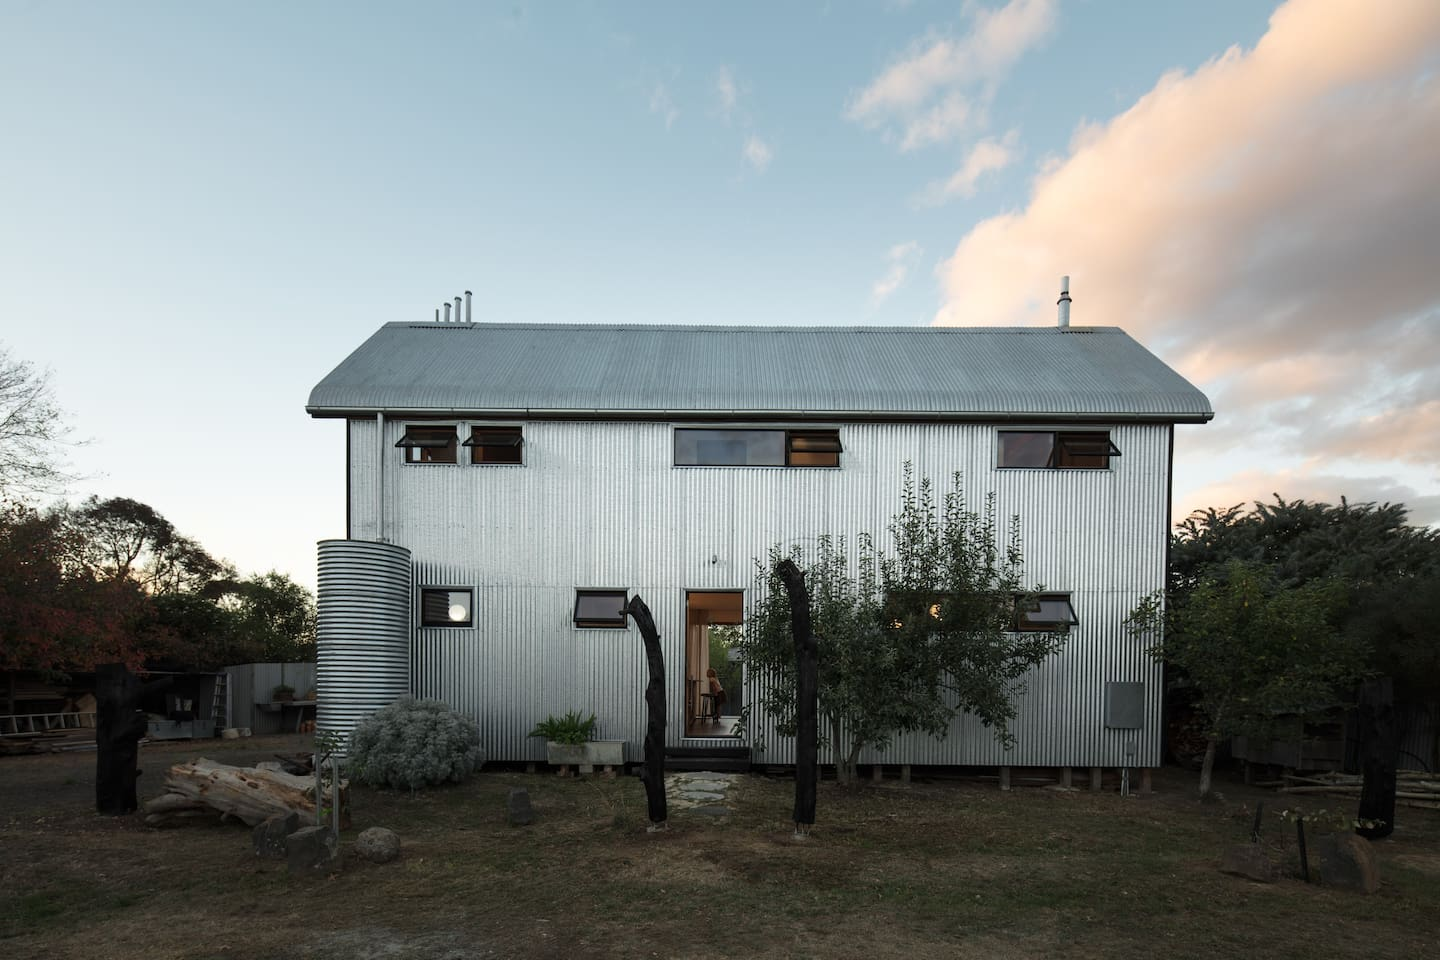 The Recyclable House Beaufort - Experience life in the Circular Economy.